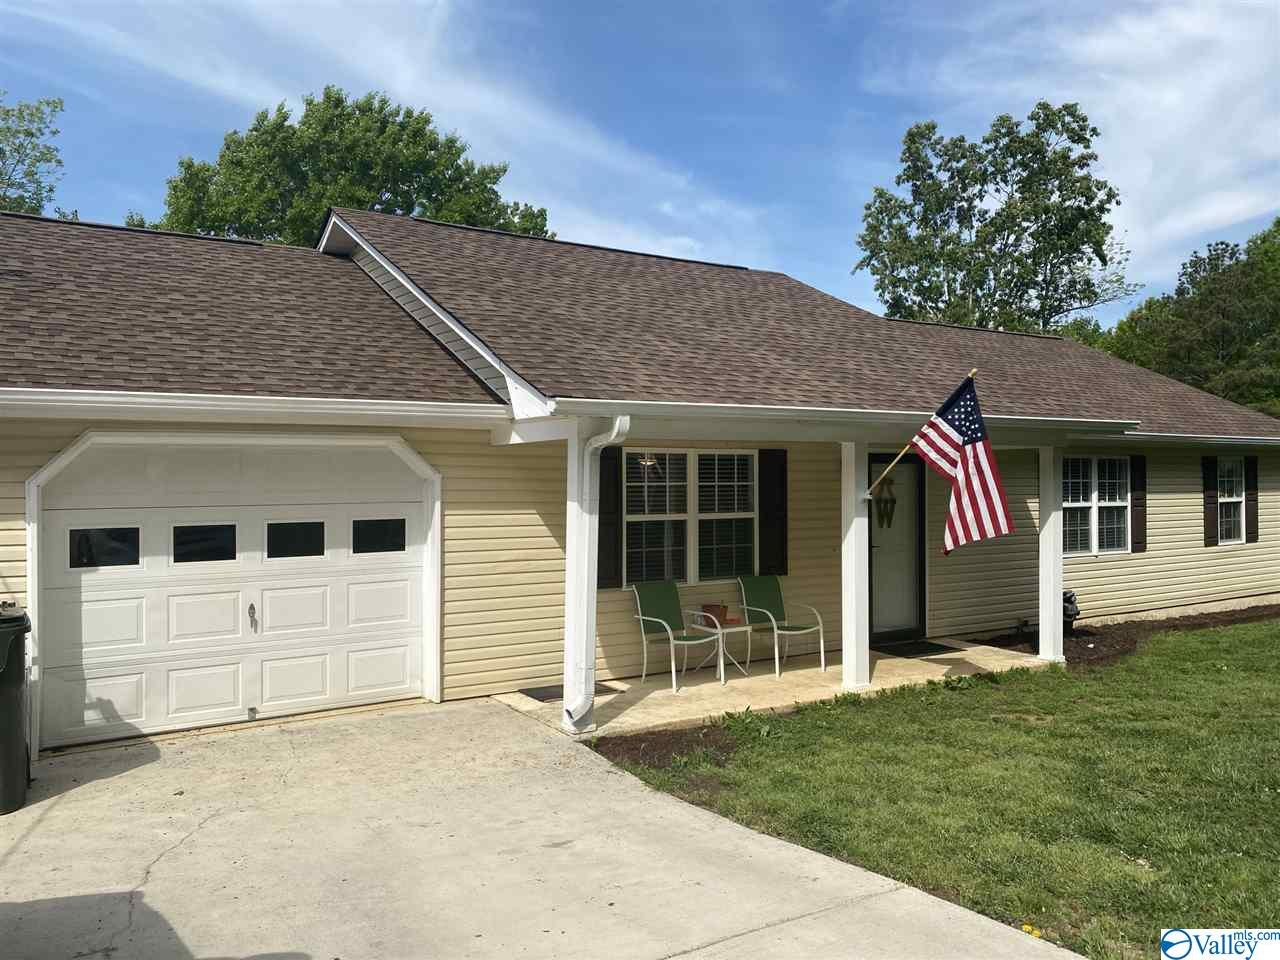 Super cute 3 bedroom, 2 bath home located less than 1.5 miles to New Hope Schools. Newer deck on the back and a large backyard that affords privacy.